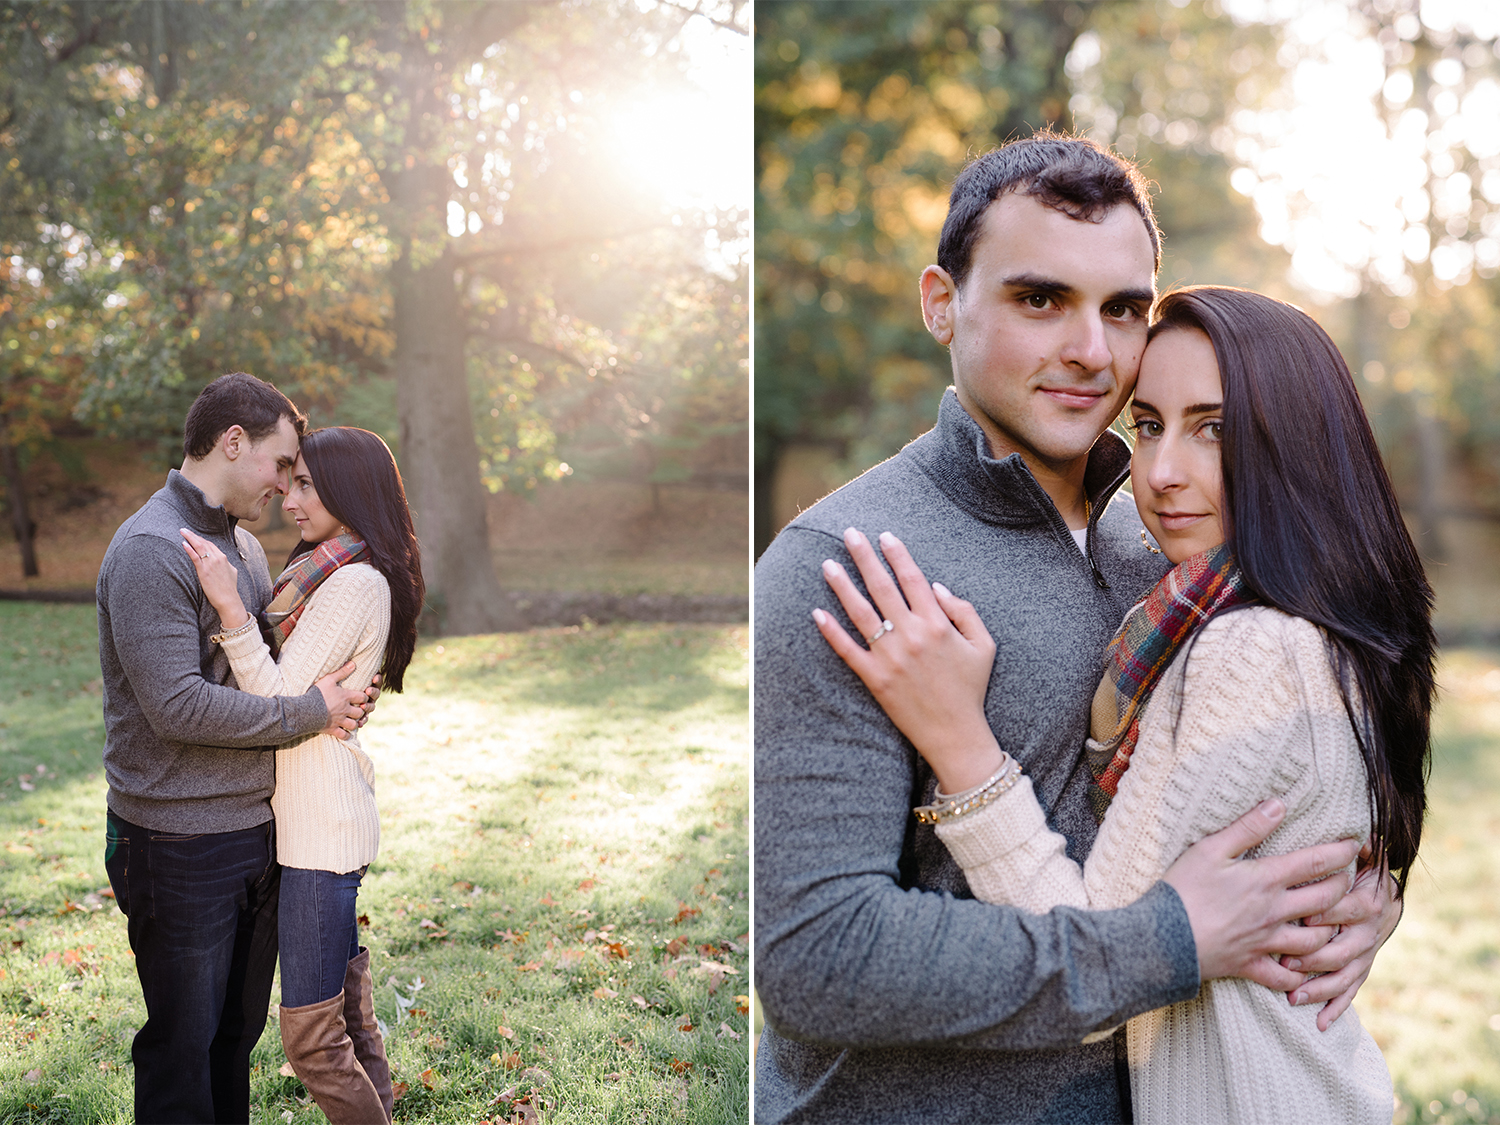 Melissa+Jeff- Local Park Engagement Session with Dog- Booth Park Nutley- New Jersey-Olivia Christina Photo-6.jpg